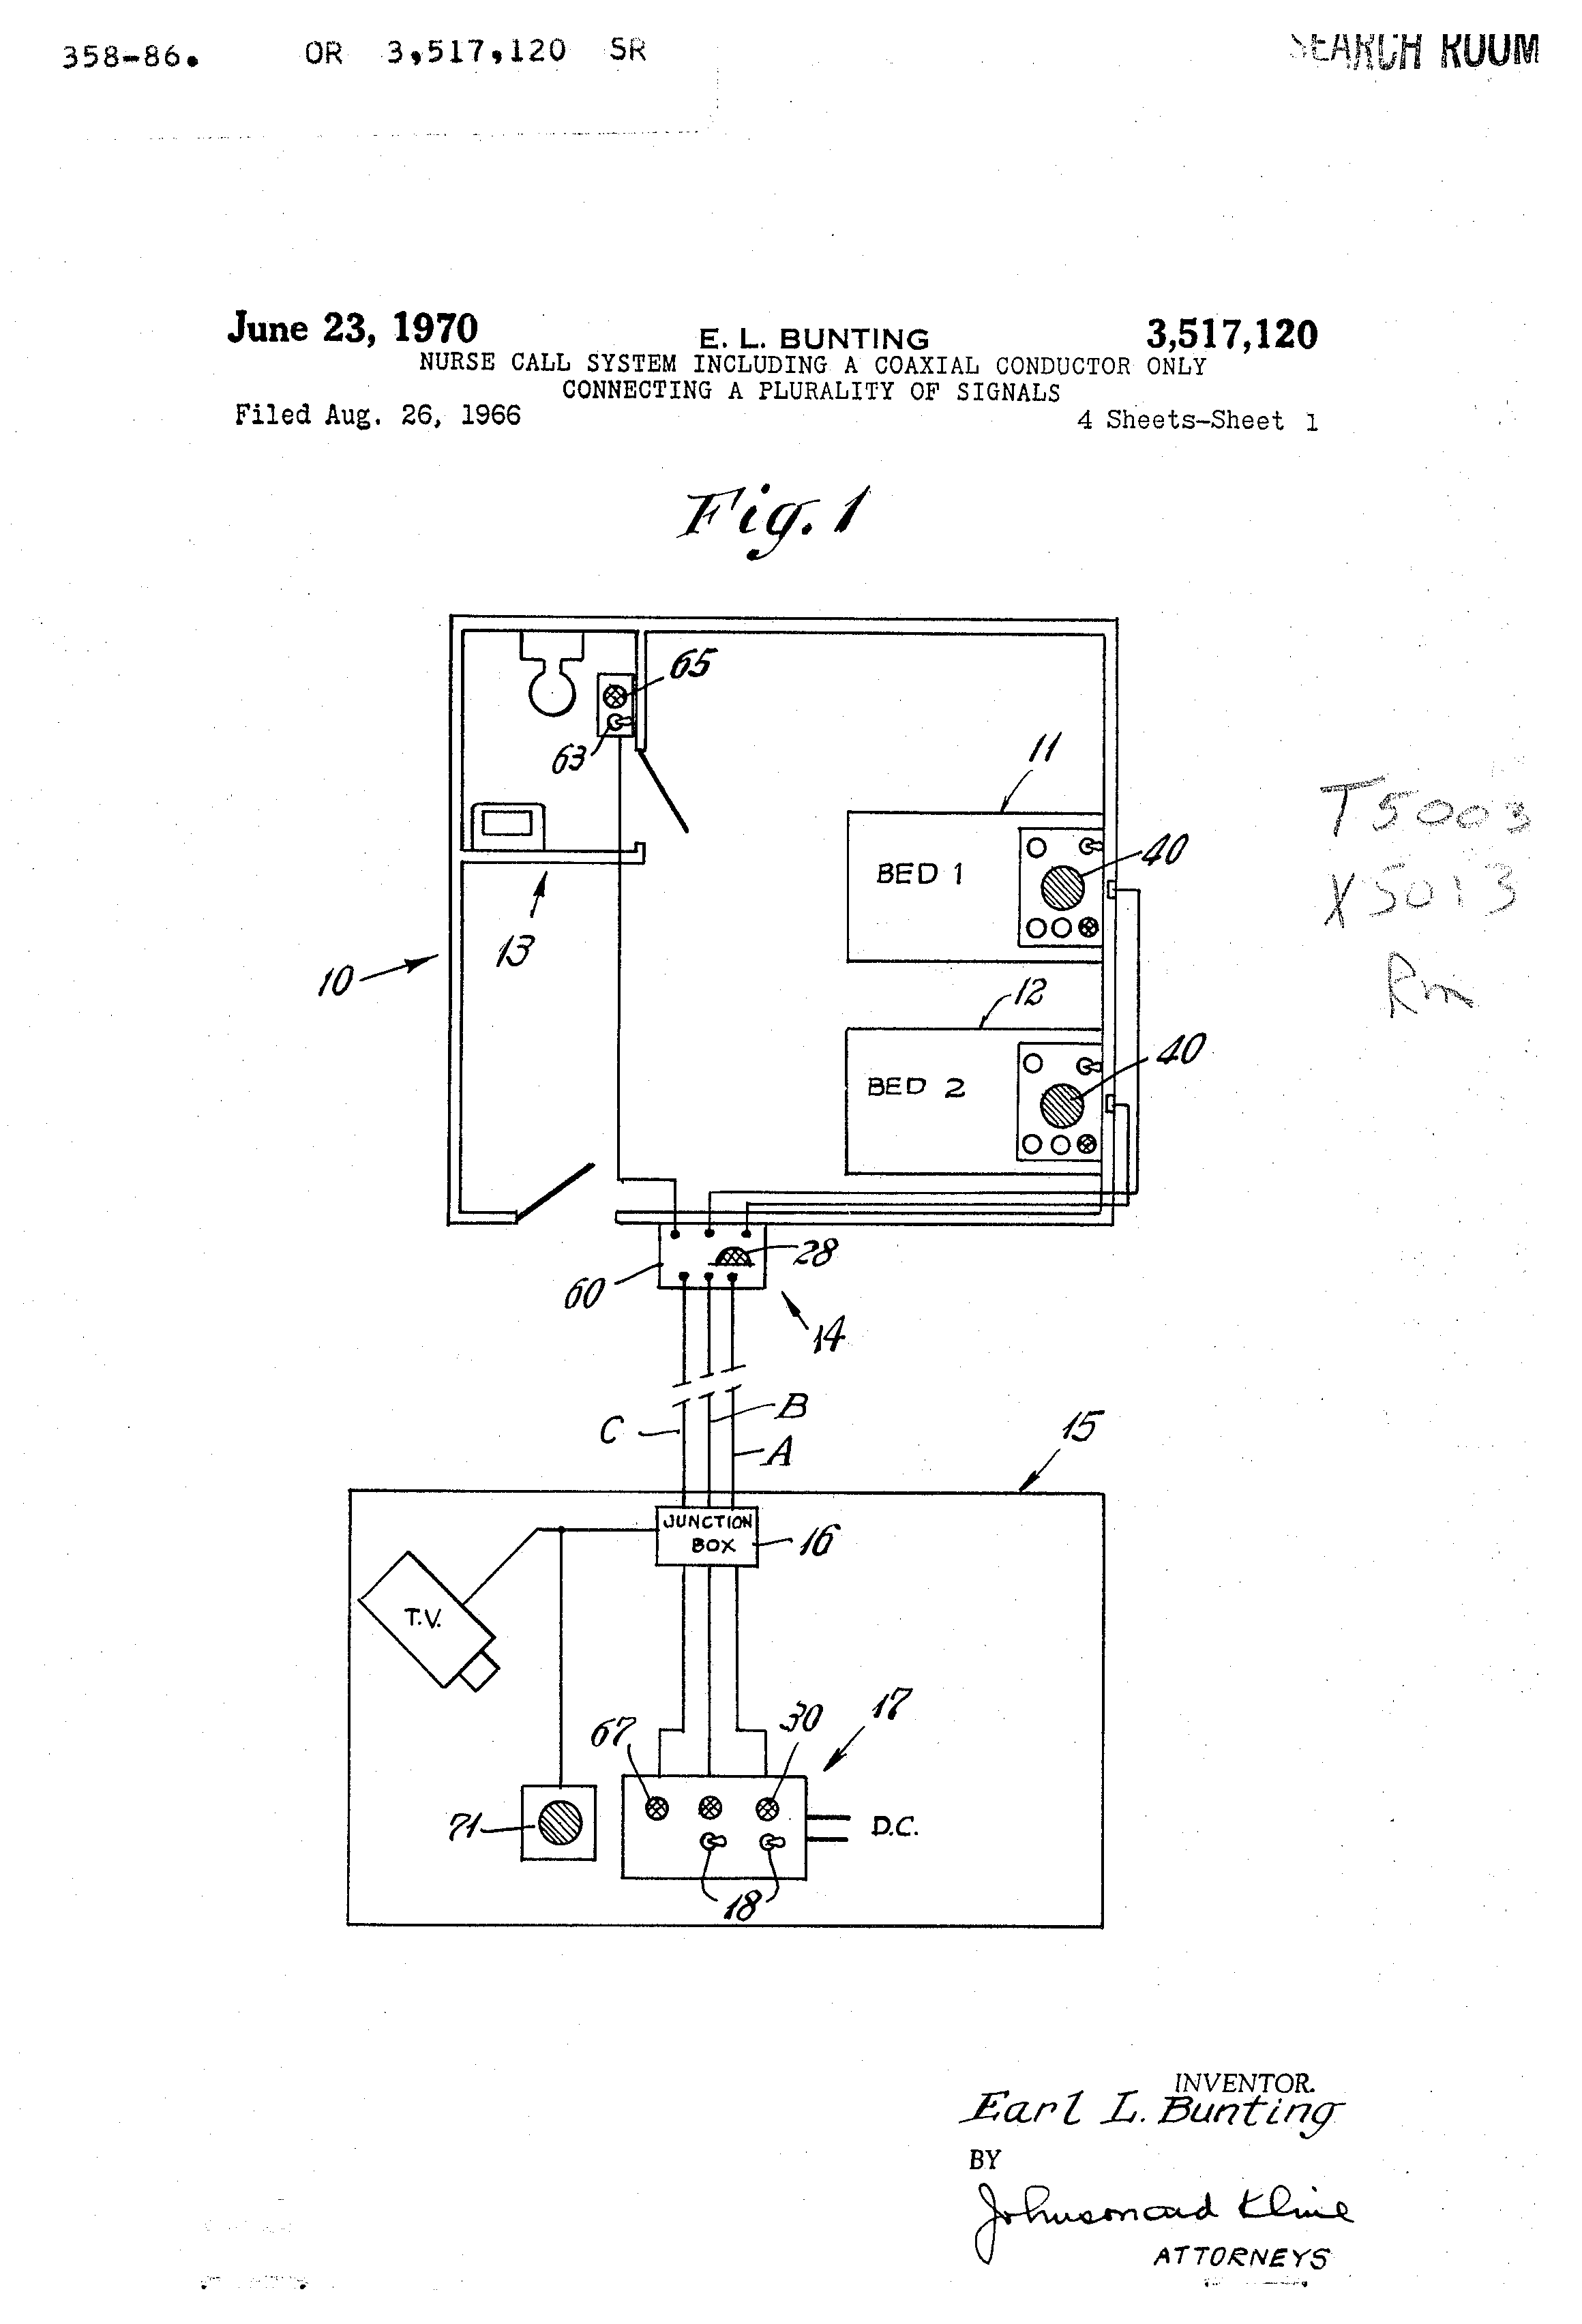 US3517120 0 patent us3517120 nurse call system including a coaxial conductor gamewell master box wire diagram at alyssarenee.co